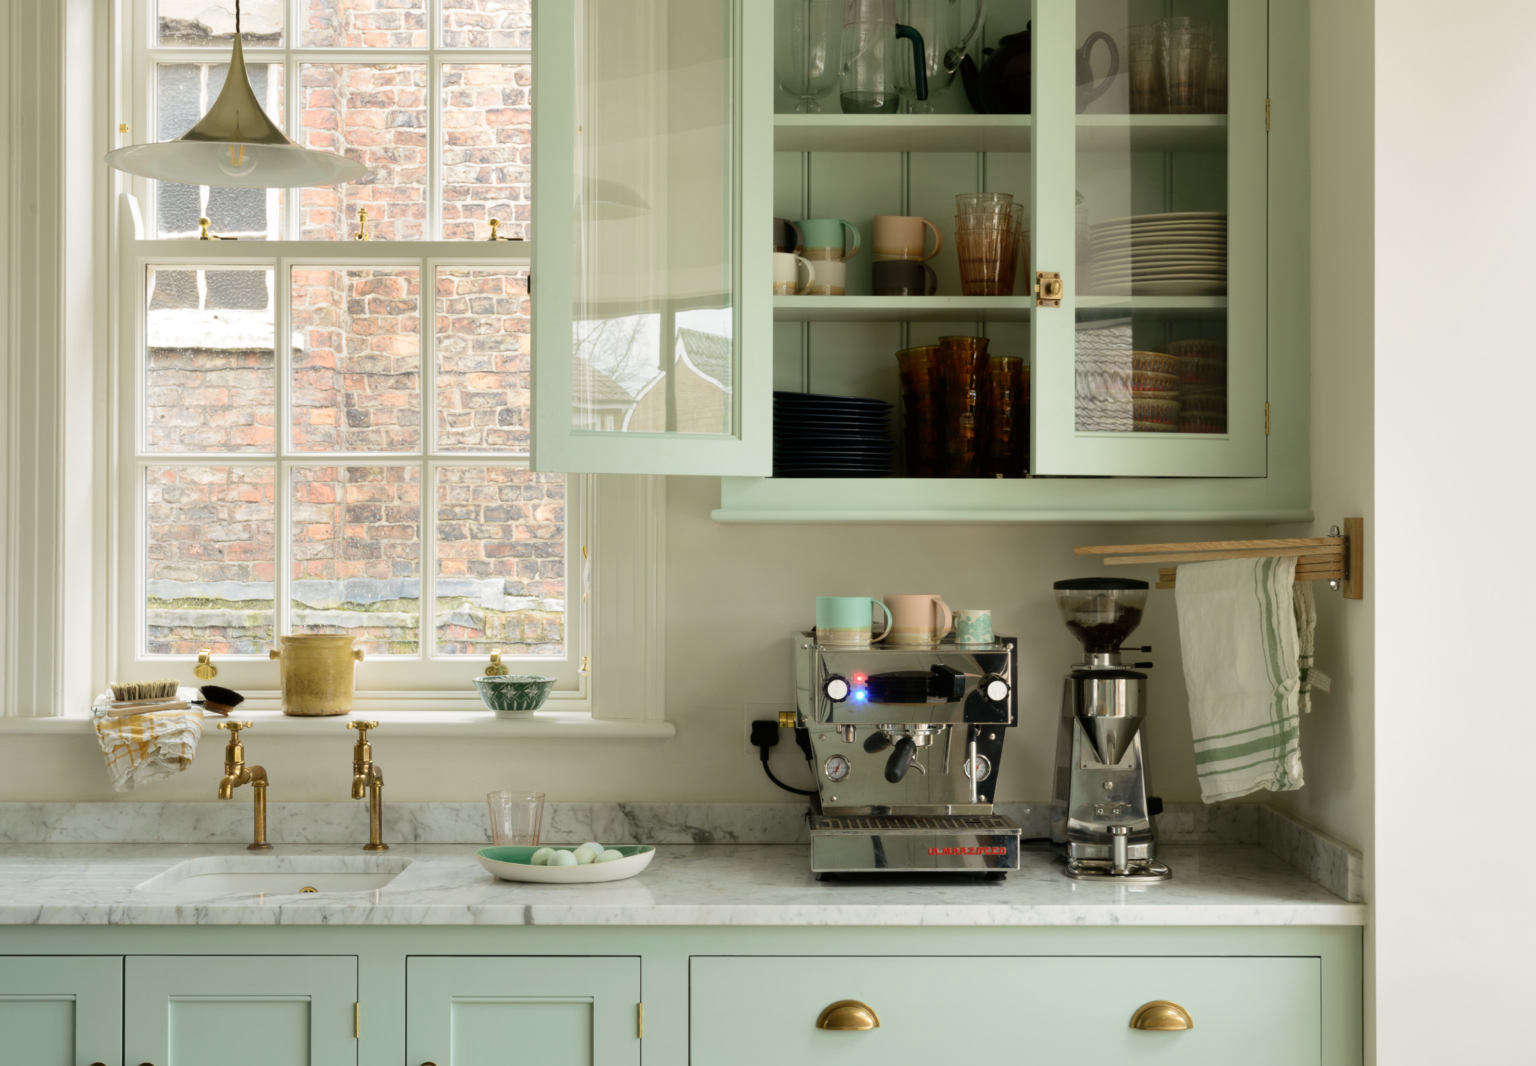 Expert Advice 7 Storage Needs To Consider Before A Kitchen Remodel